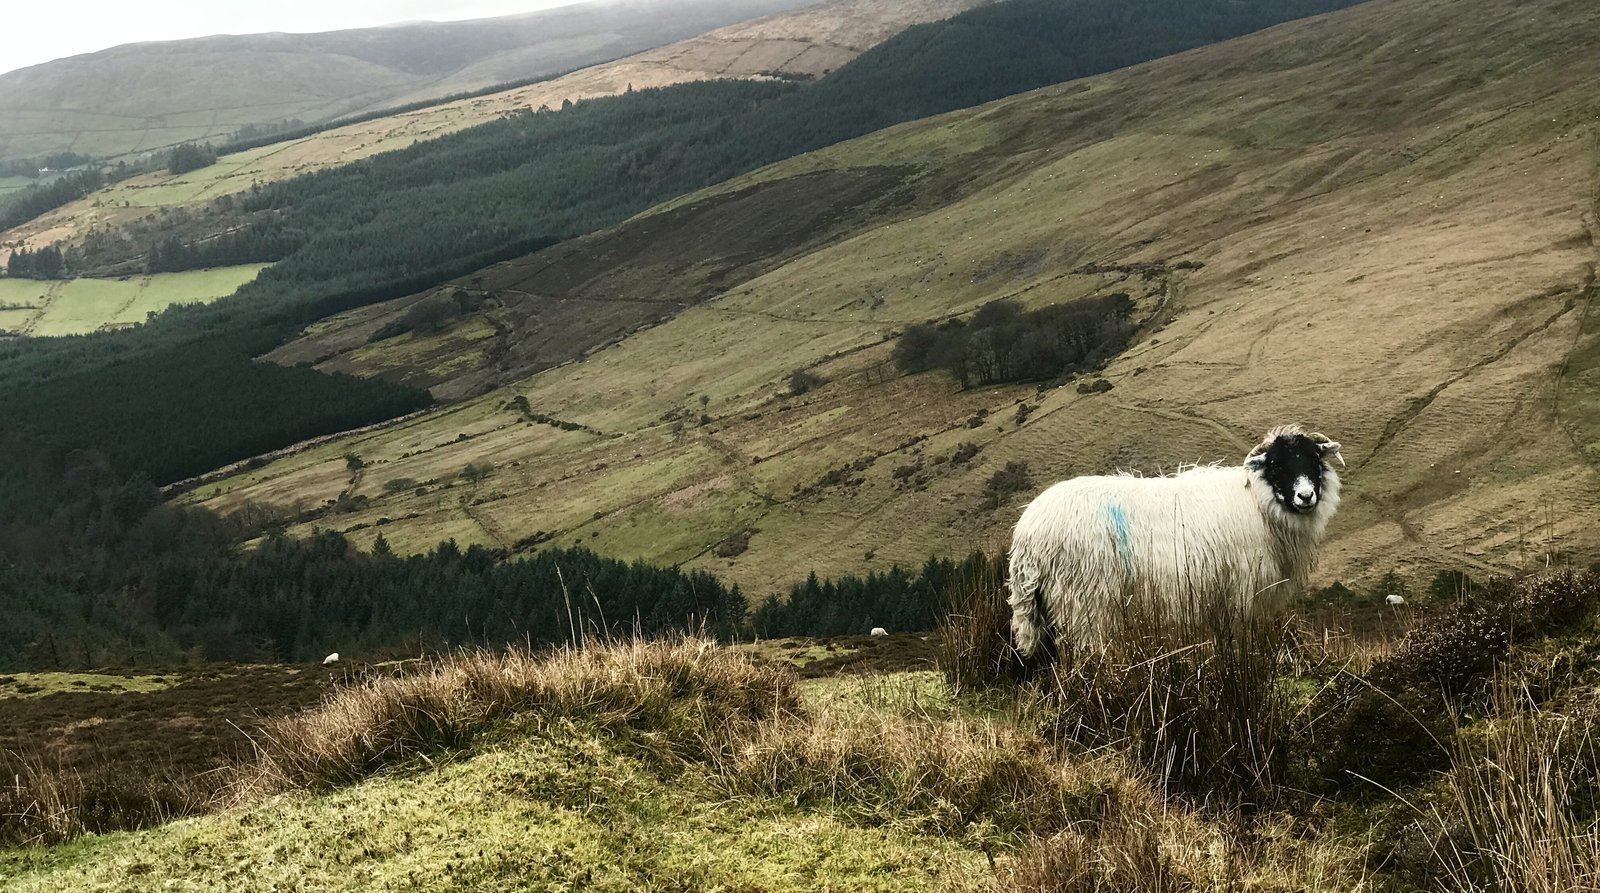 Bill to protect landowners from claims by hillwalkers